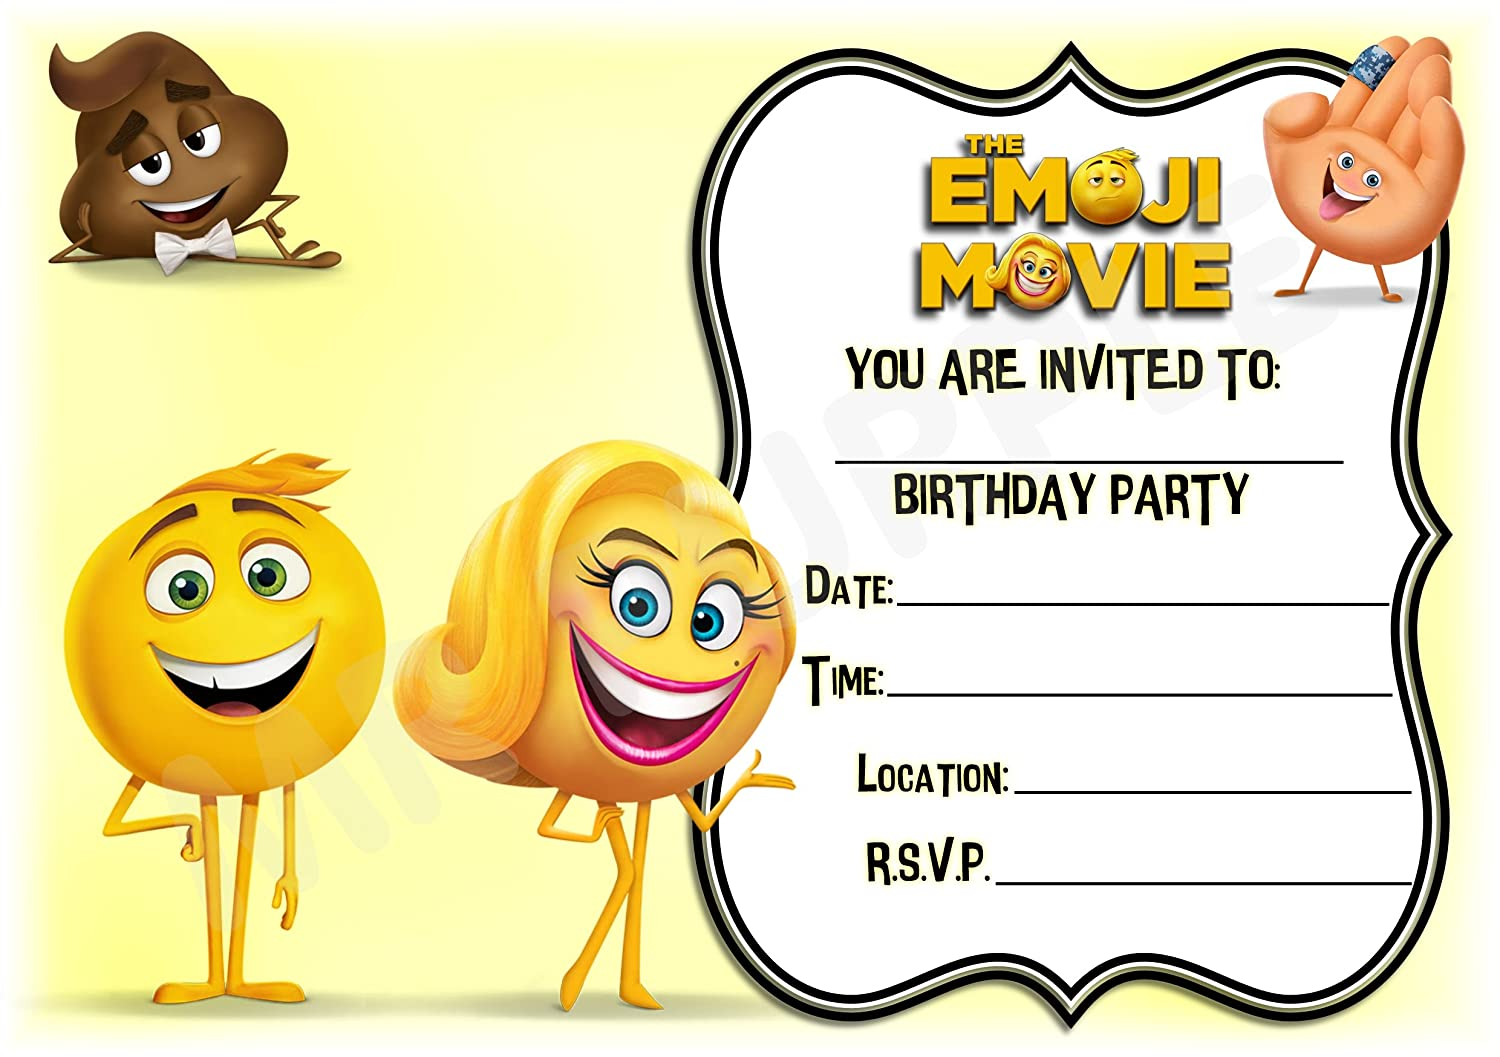 The Emoji Movie Birthday Party Invites